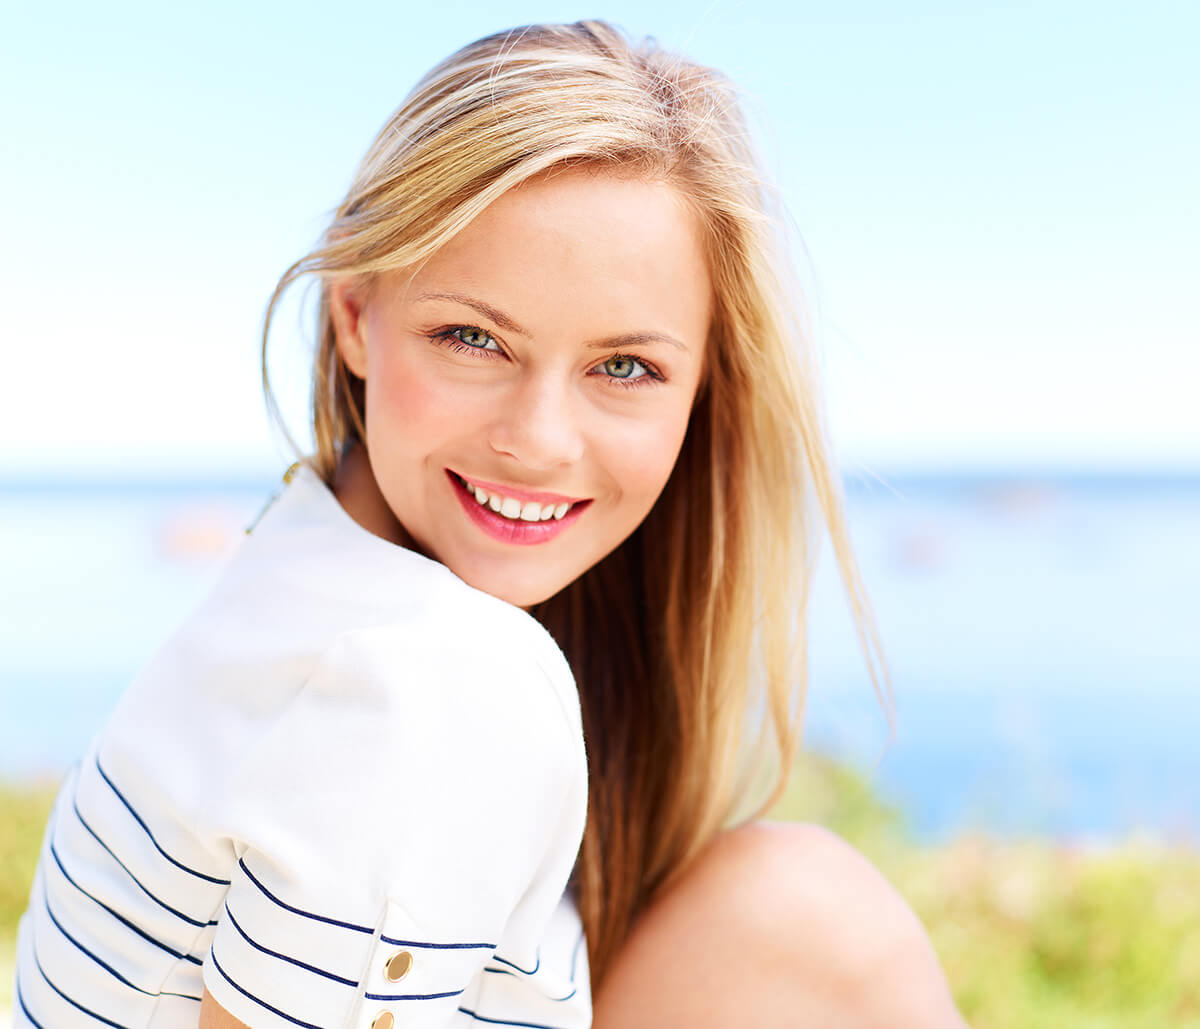 Cosmetic Dentistry Services at Bright Smiles Dental Studio in Glendale, Ca Area